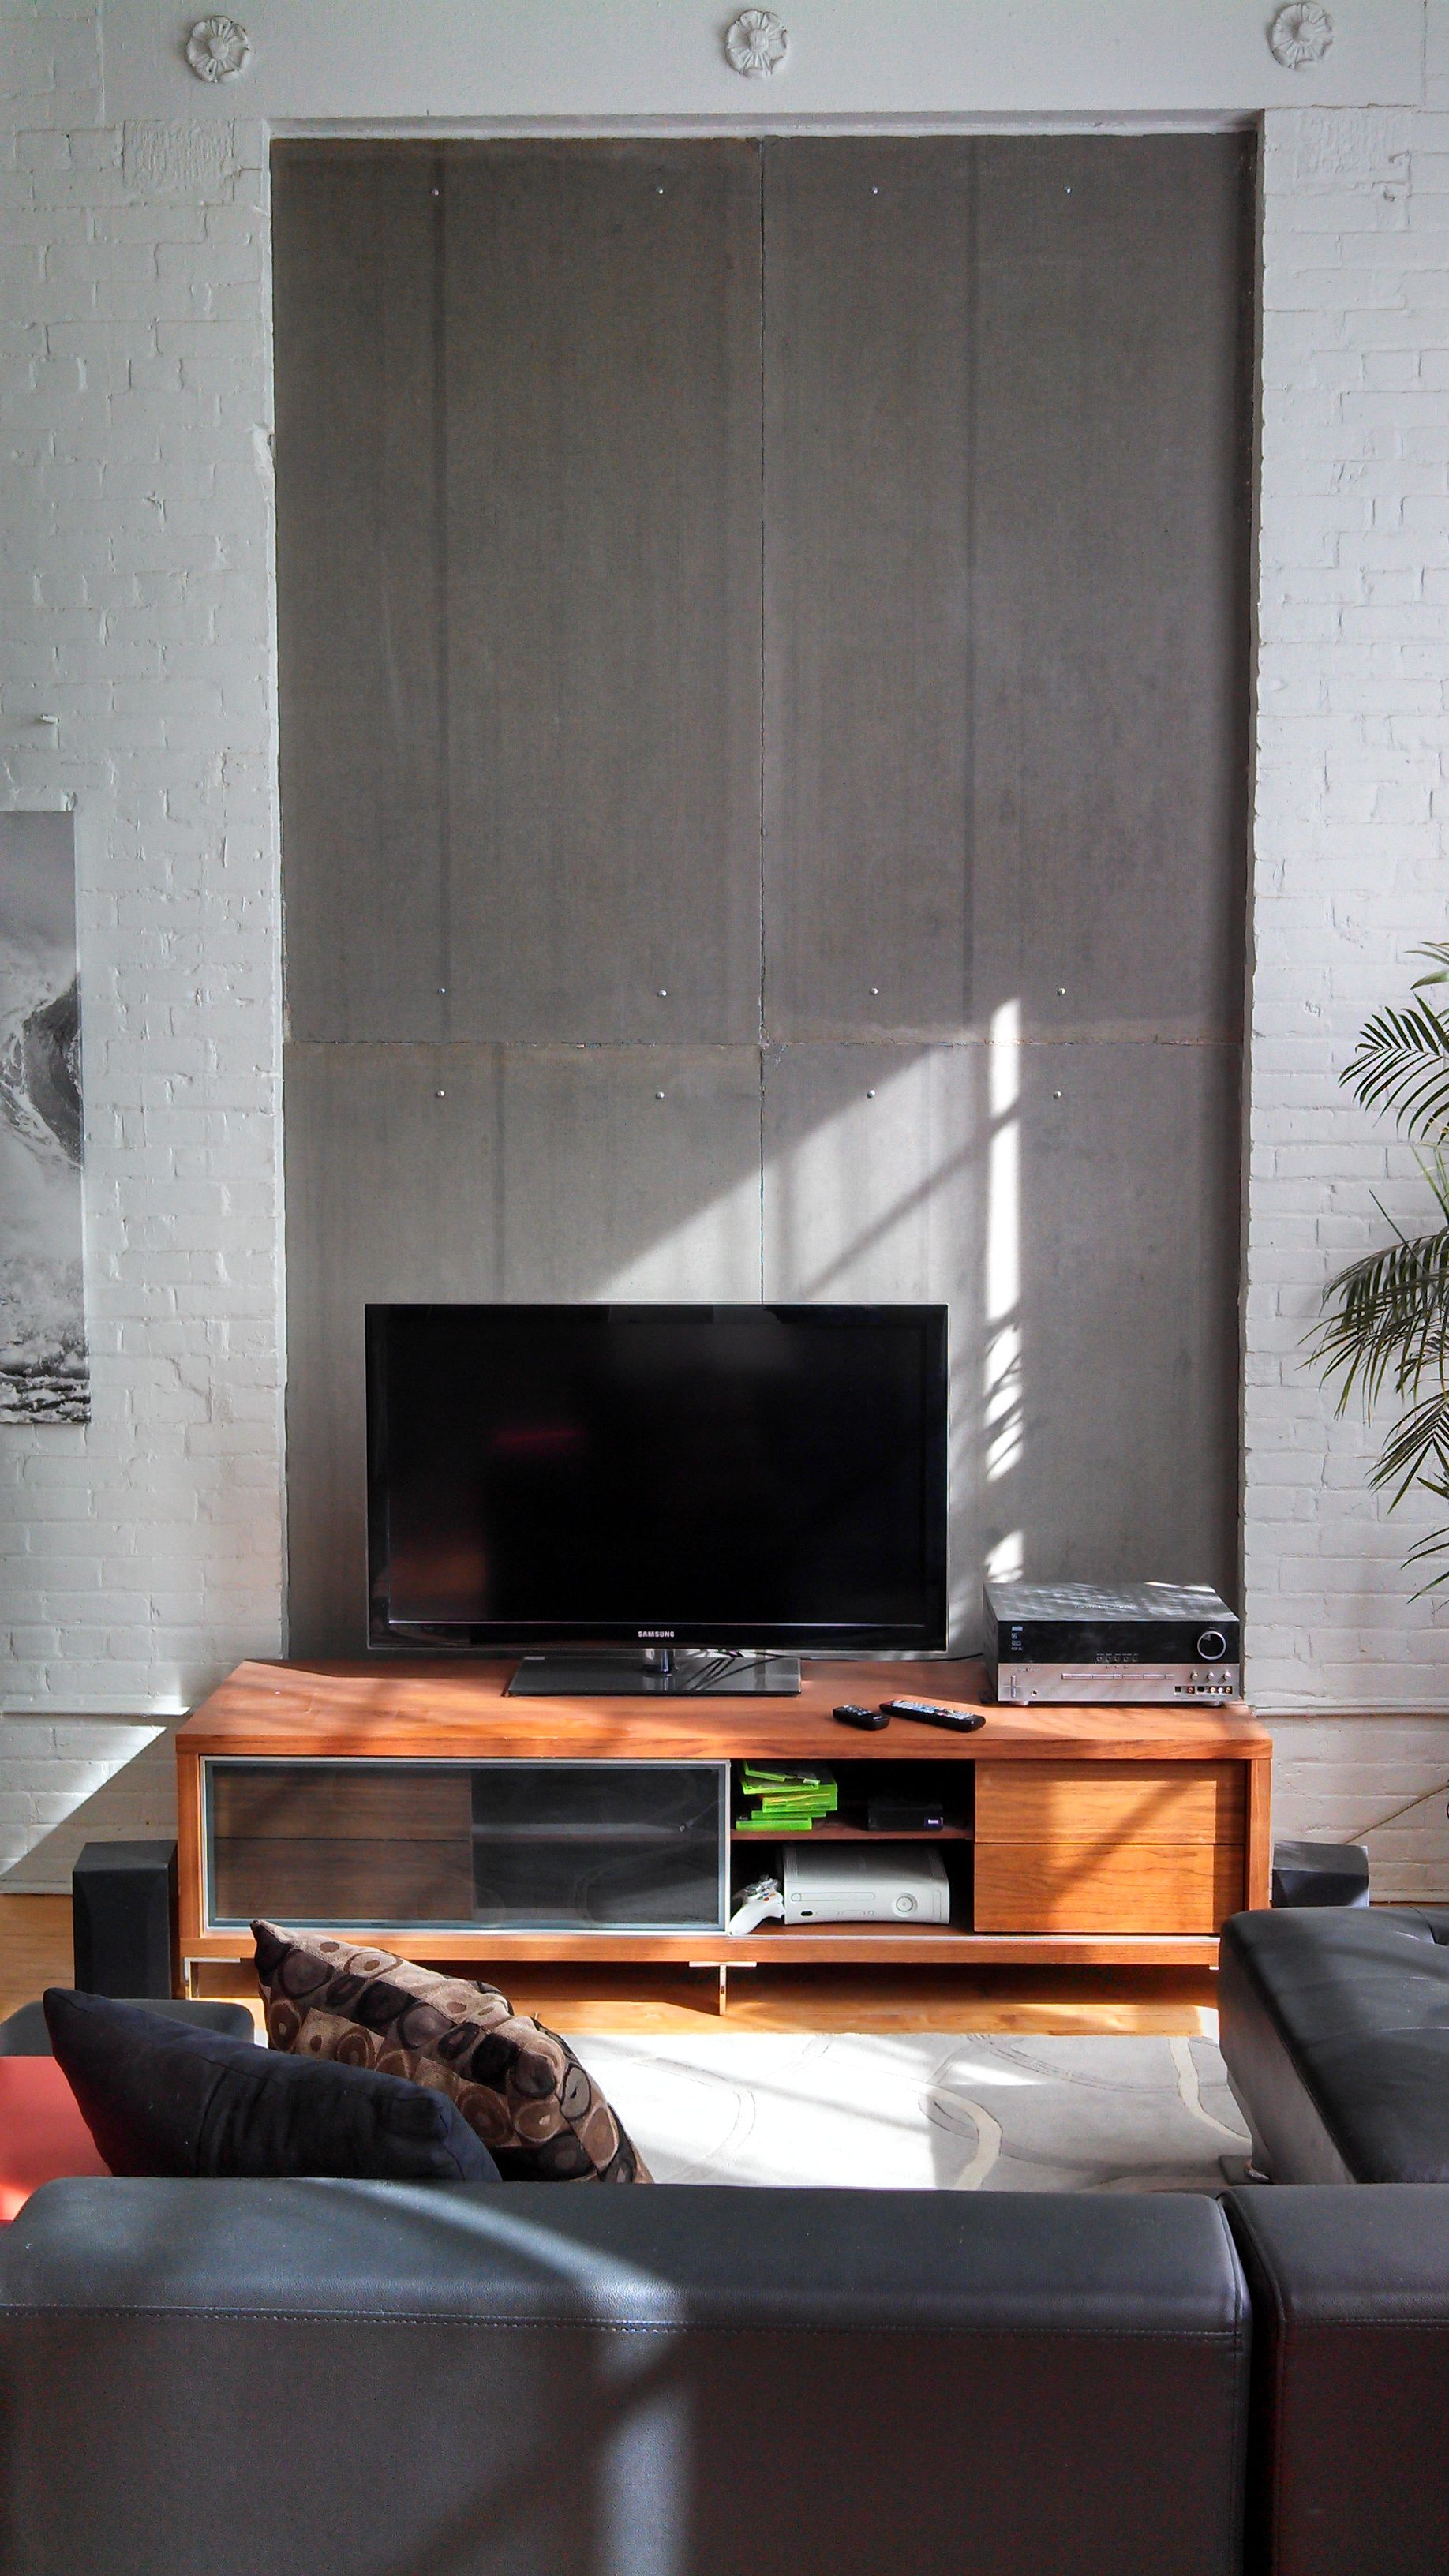 Cement Board Used As A Wall Covering With Images Room Design Fireplace Cover Living Room Designs